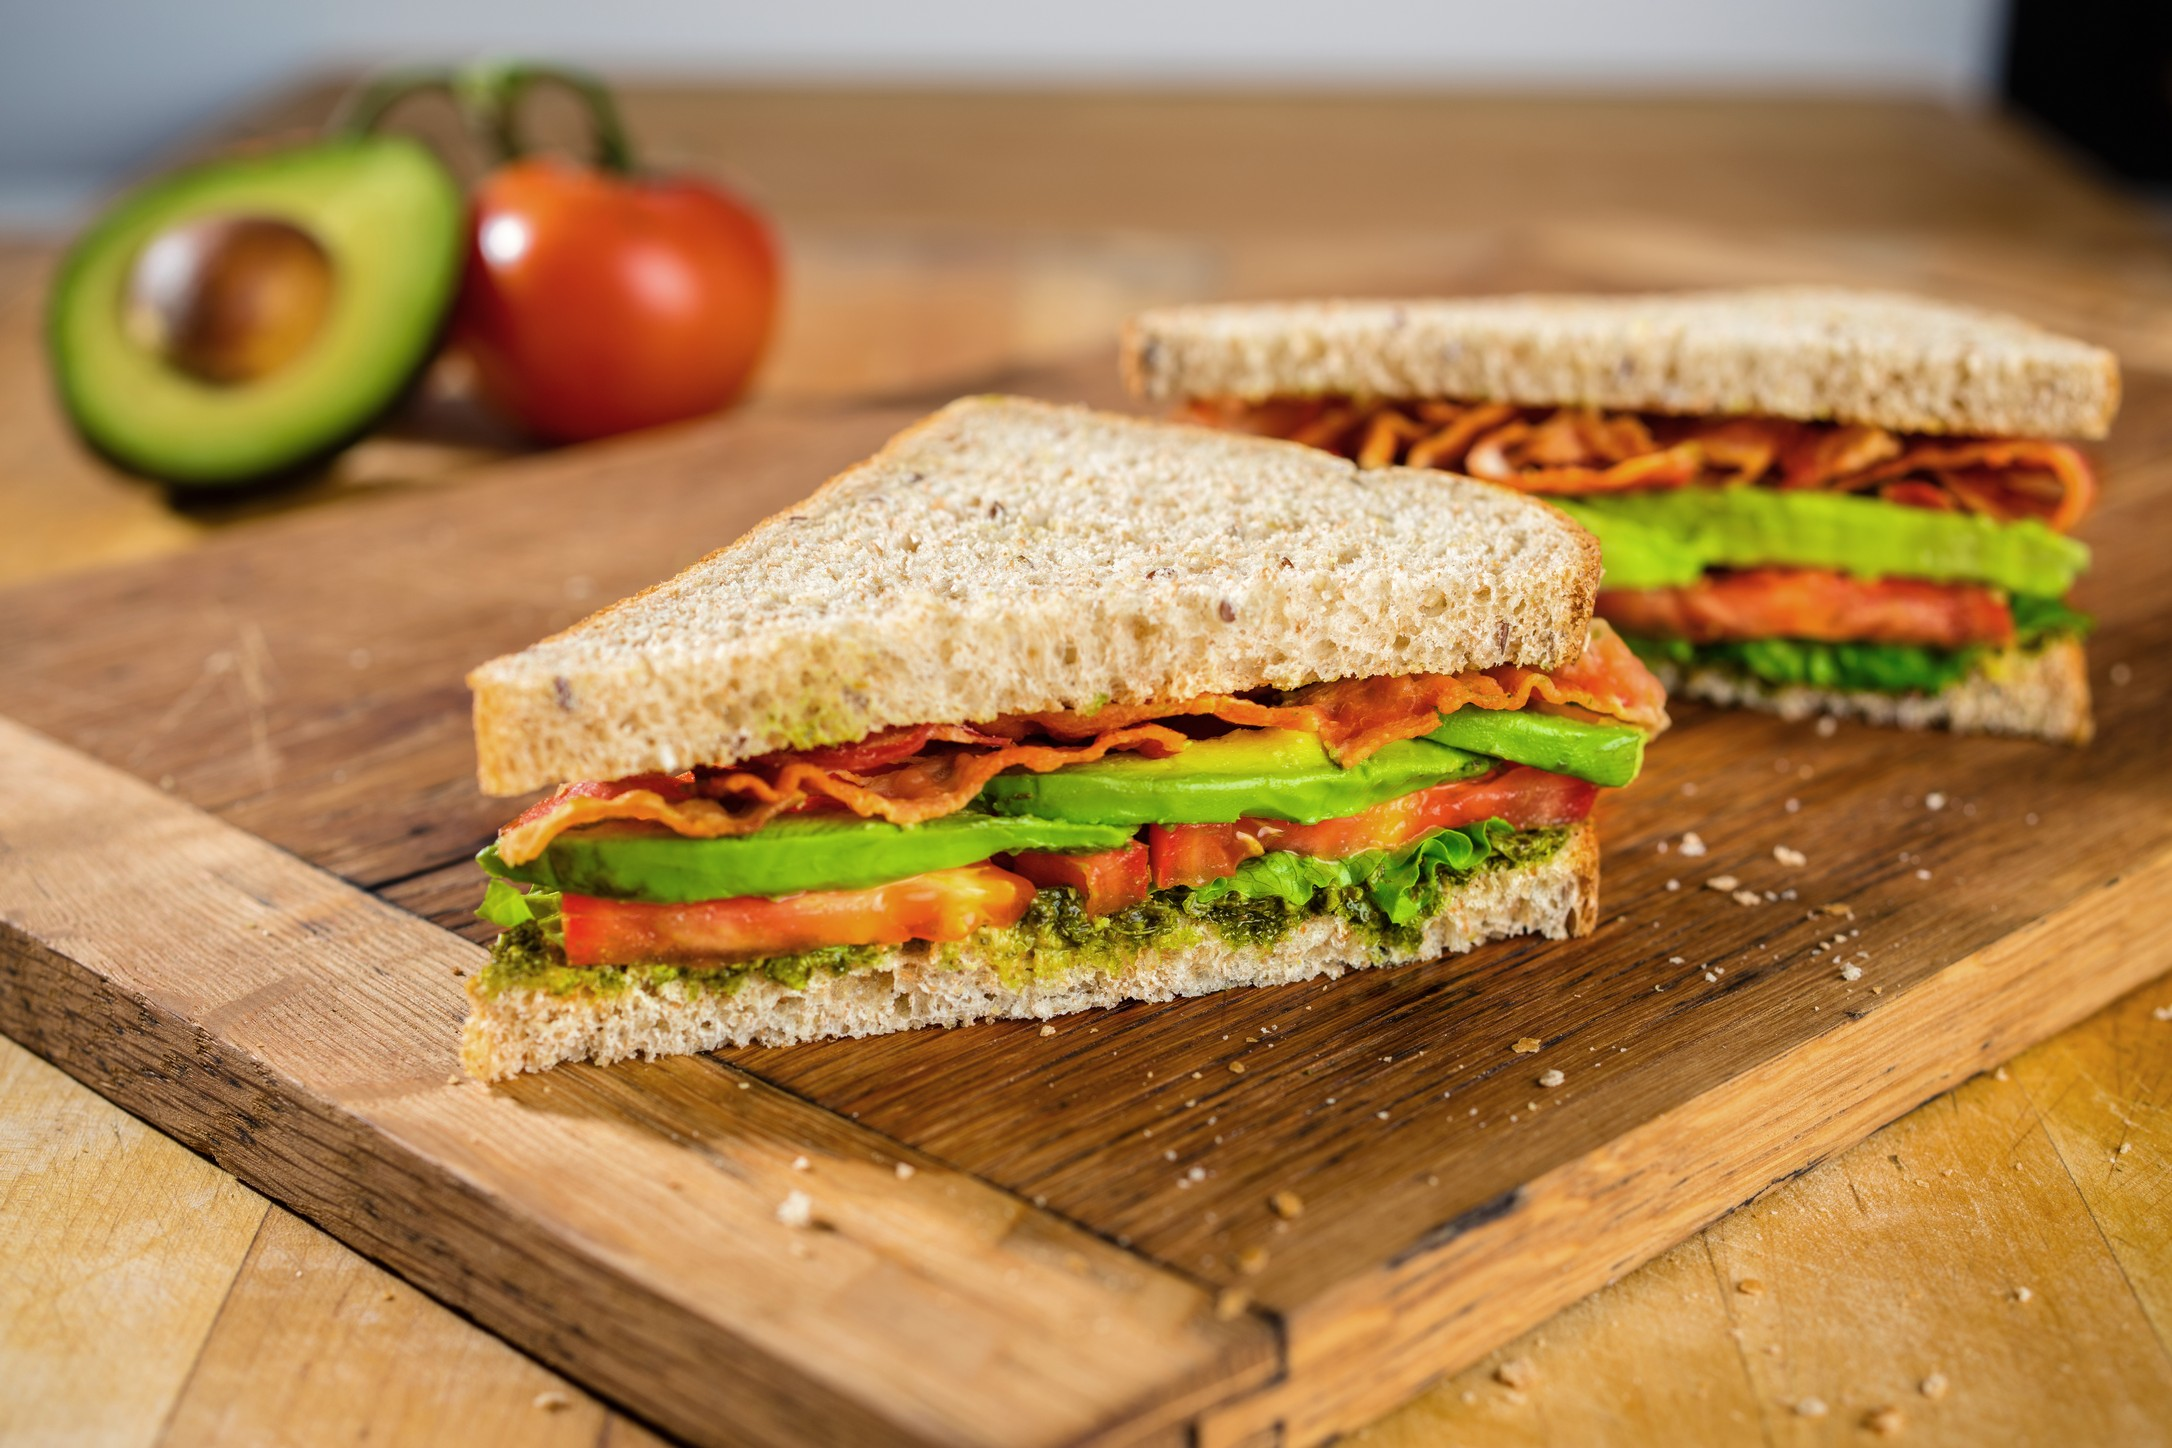 Sandwich Pics, Food Collection